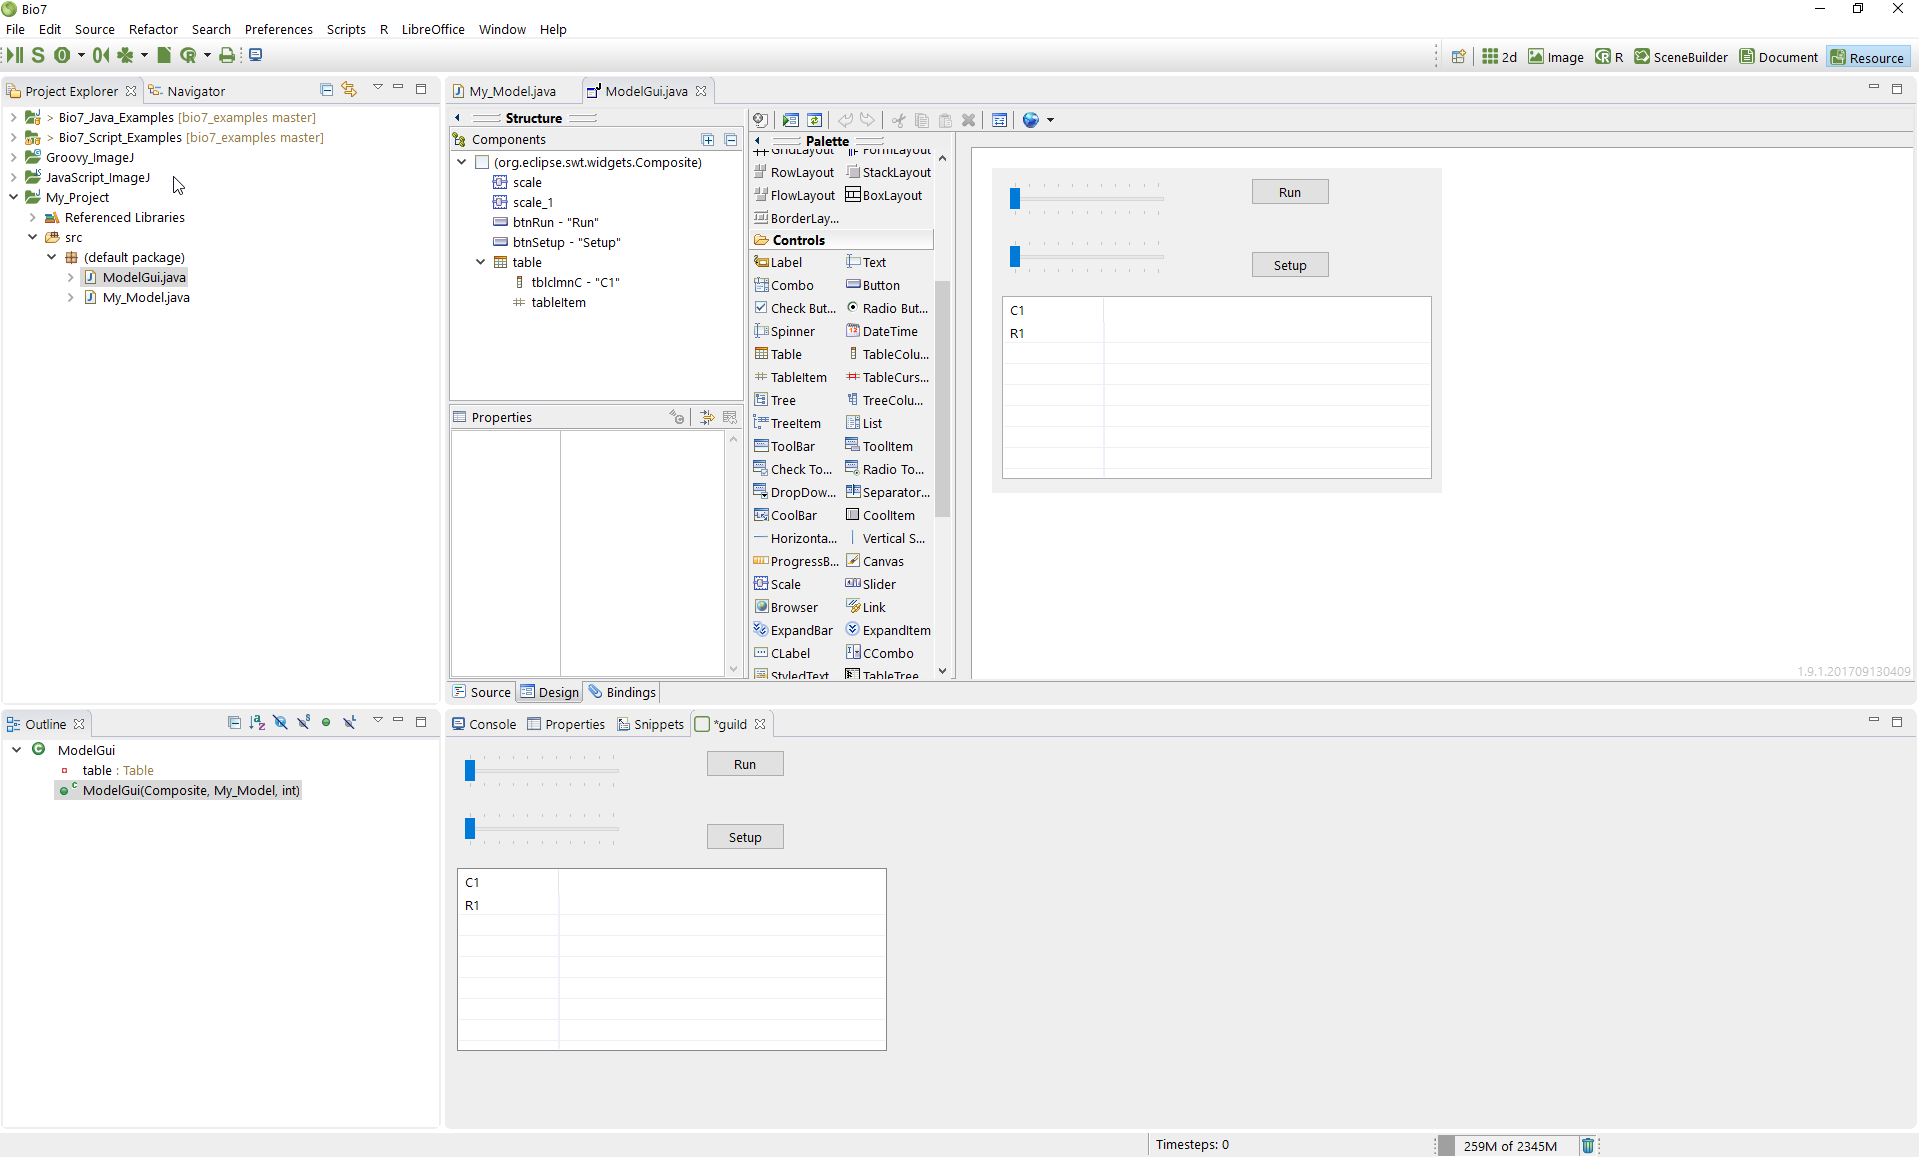 Install Useful Eclipse Plugins in Bio7 for R, Data Science